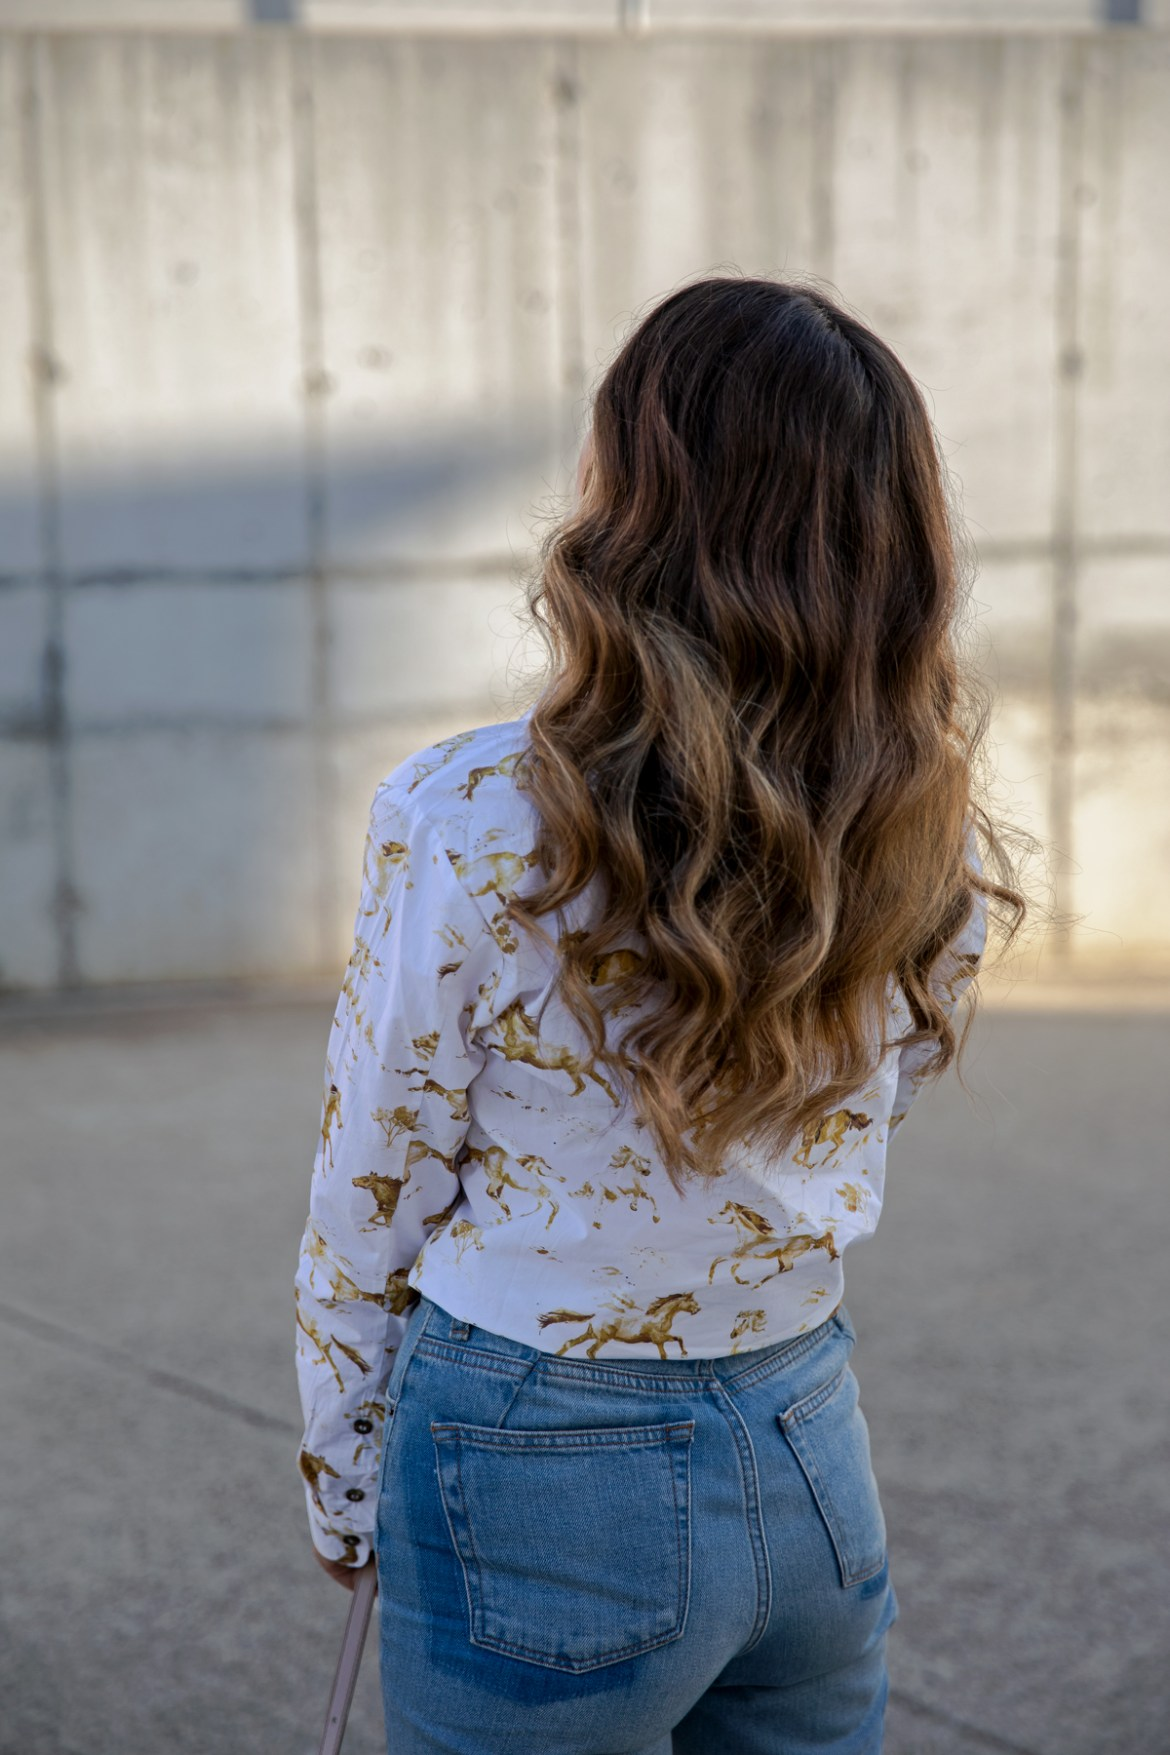 beach wave hair style Ganni horse print shirt outfit from Shopbop worn by fashion blogger Jenelle Witty from Australian blog Inspiring Wit